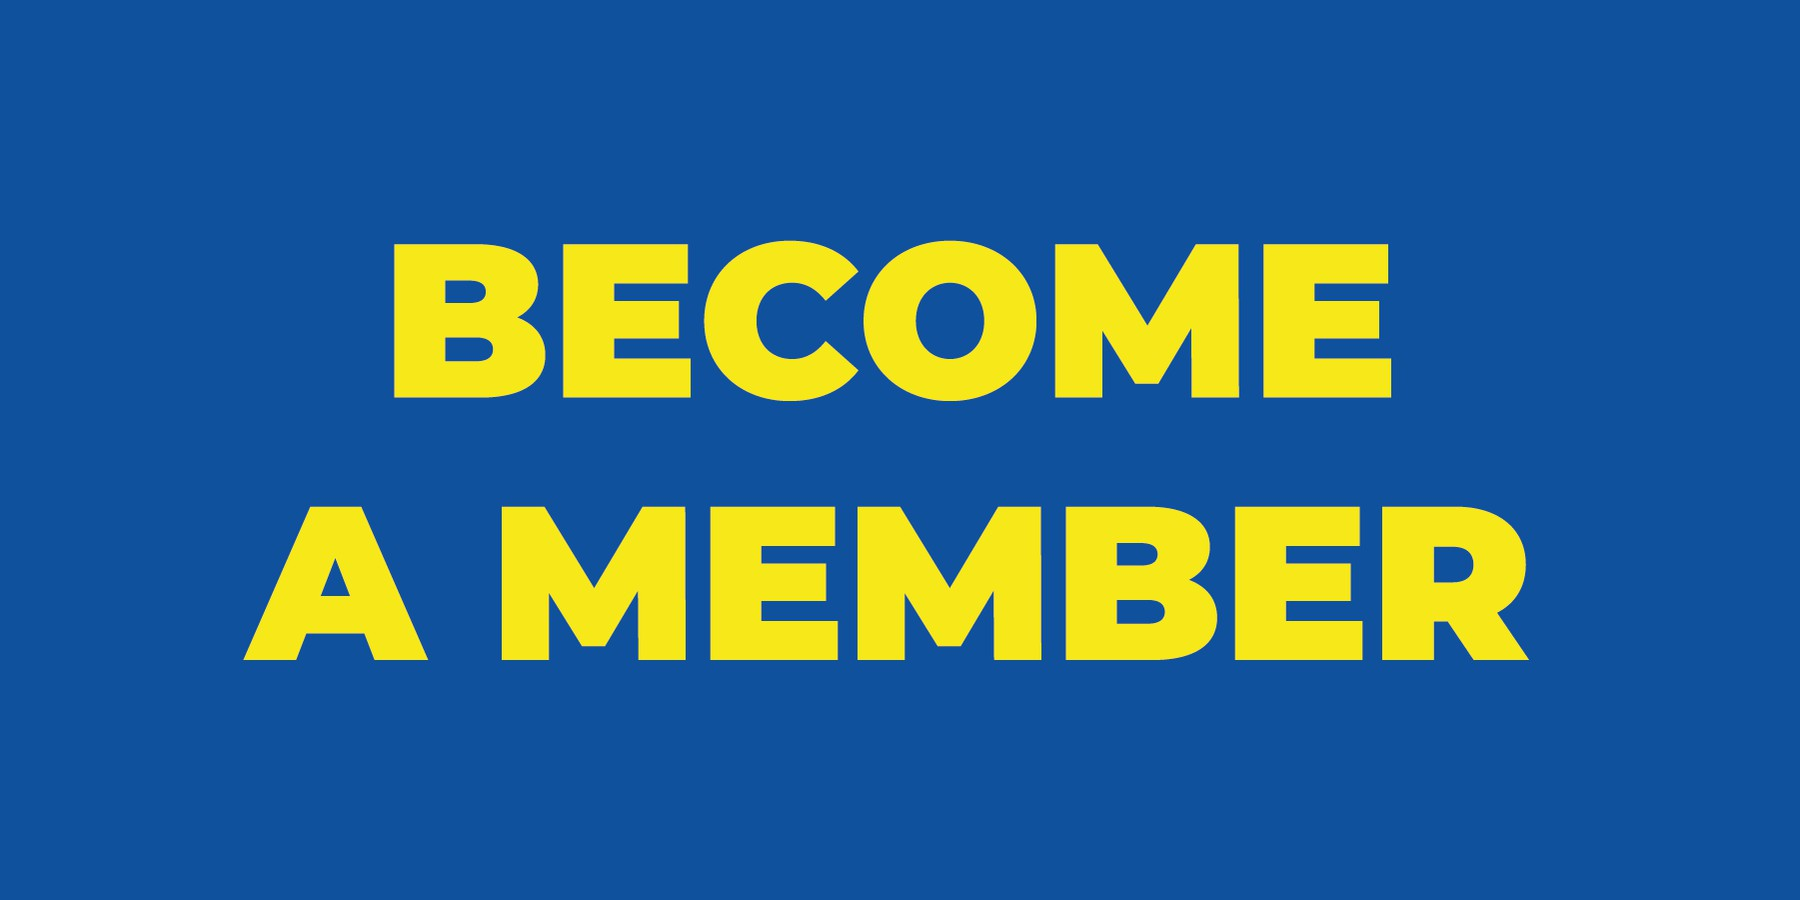 Become member - cover image